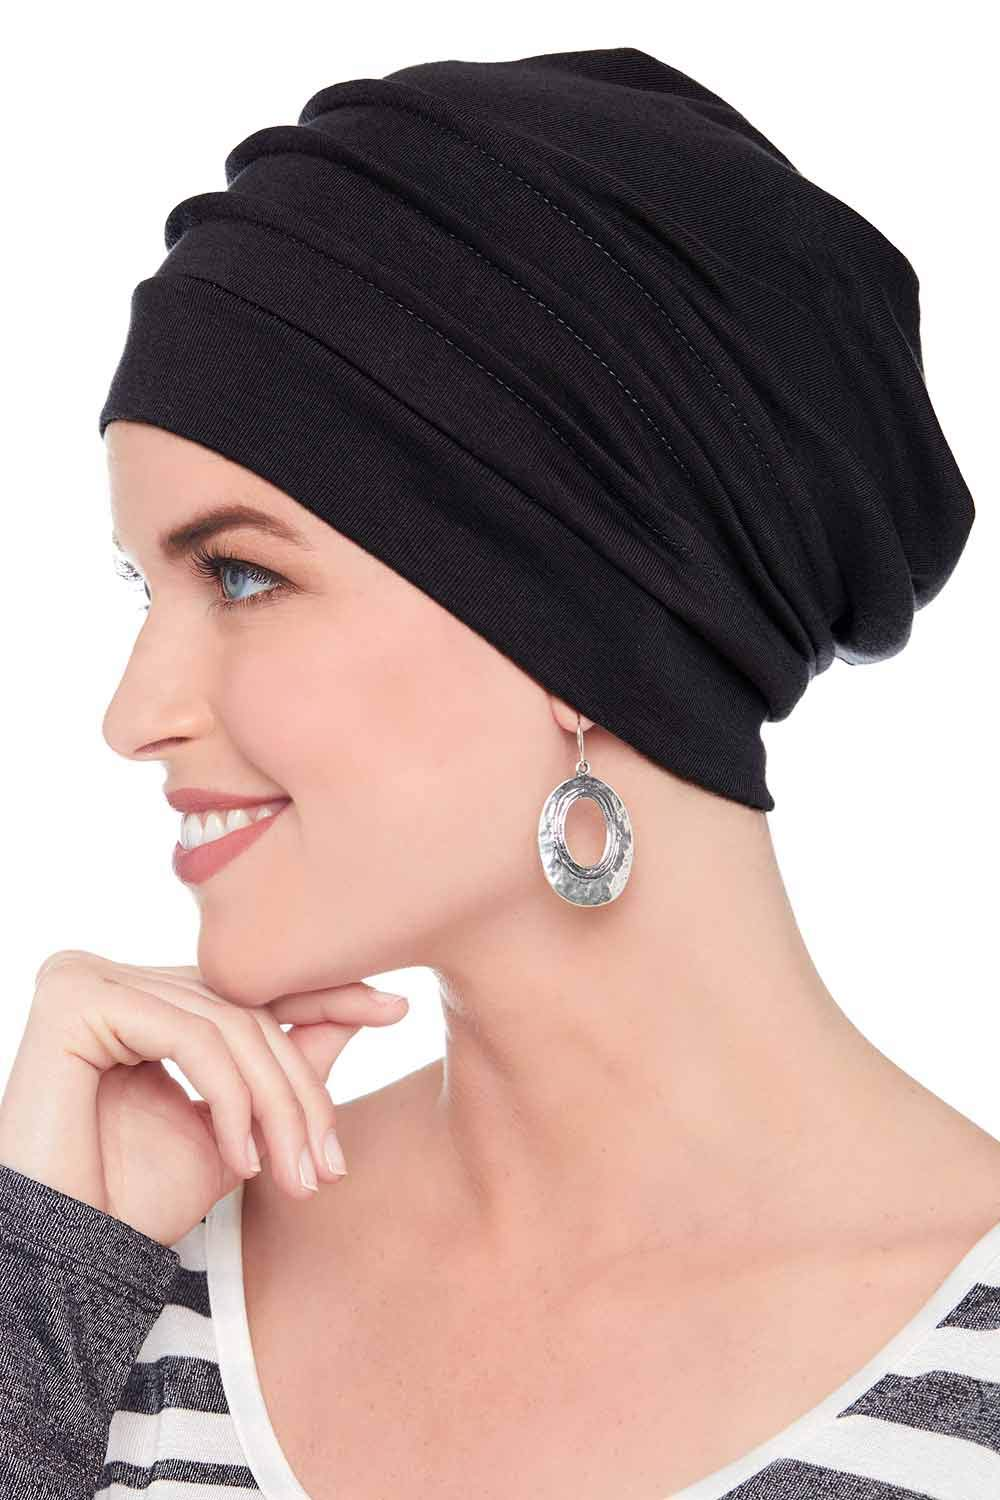 Headcovers Unlimited Slouchy Snood-Caps for Women with Chemo Cancer Hair Loss Black by Headcovers Unlimited